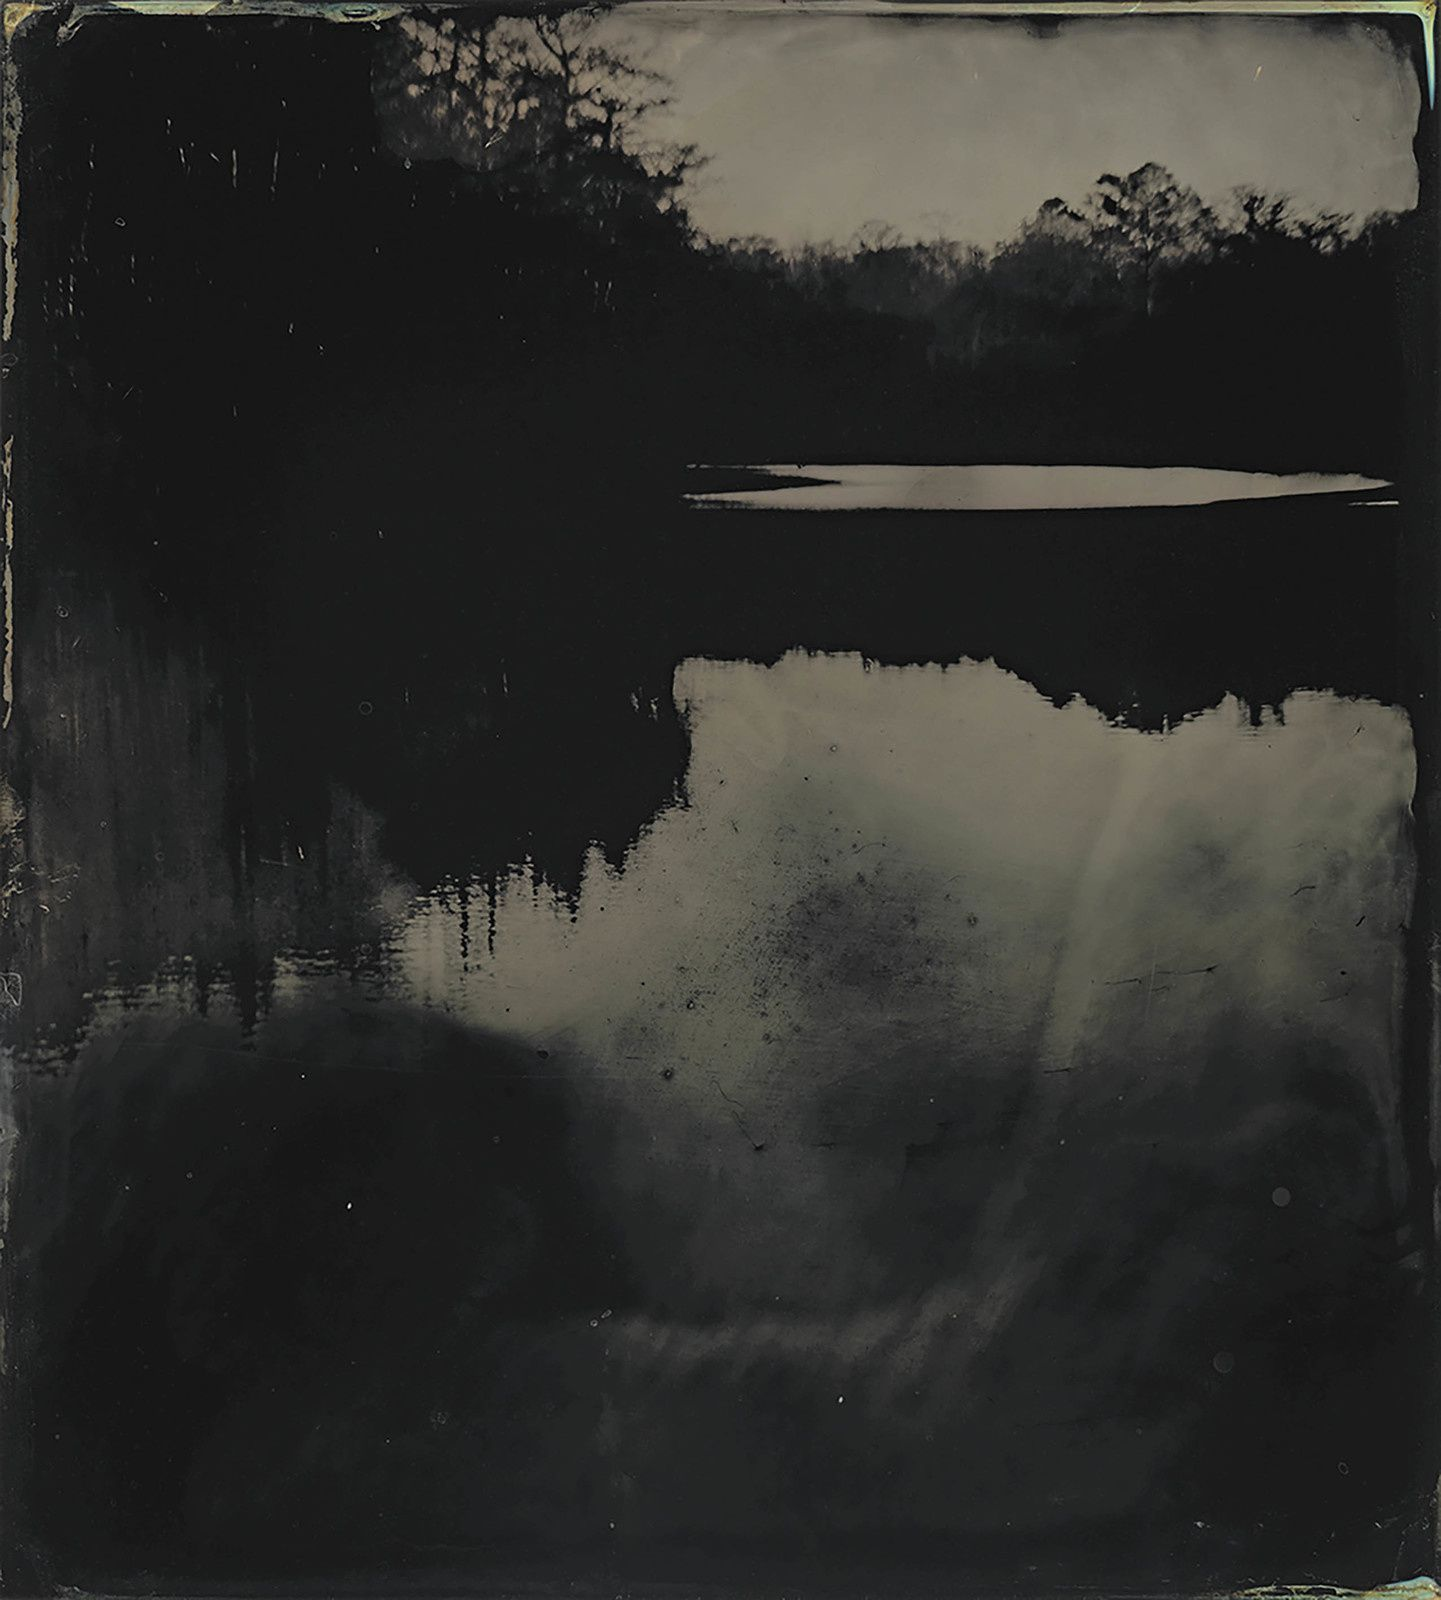 """Blackwater 17"", 2008 - 2012 de Sally MANN Tintype. Collection of the artist. © Sally Mann"